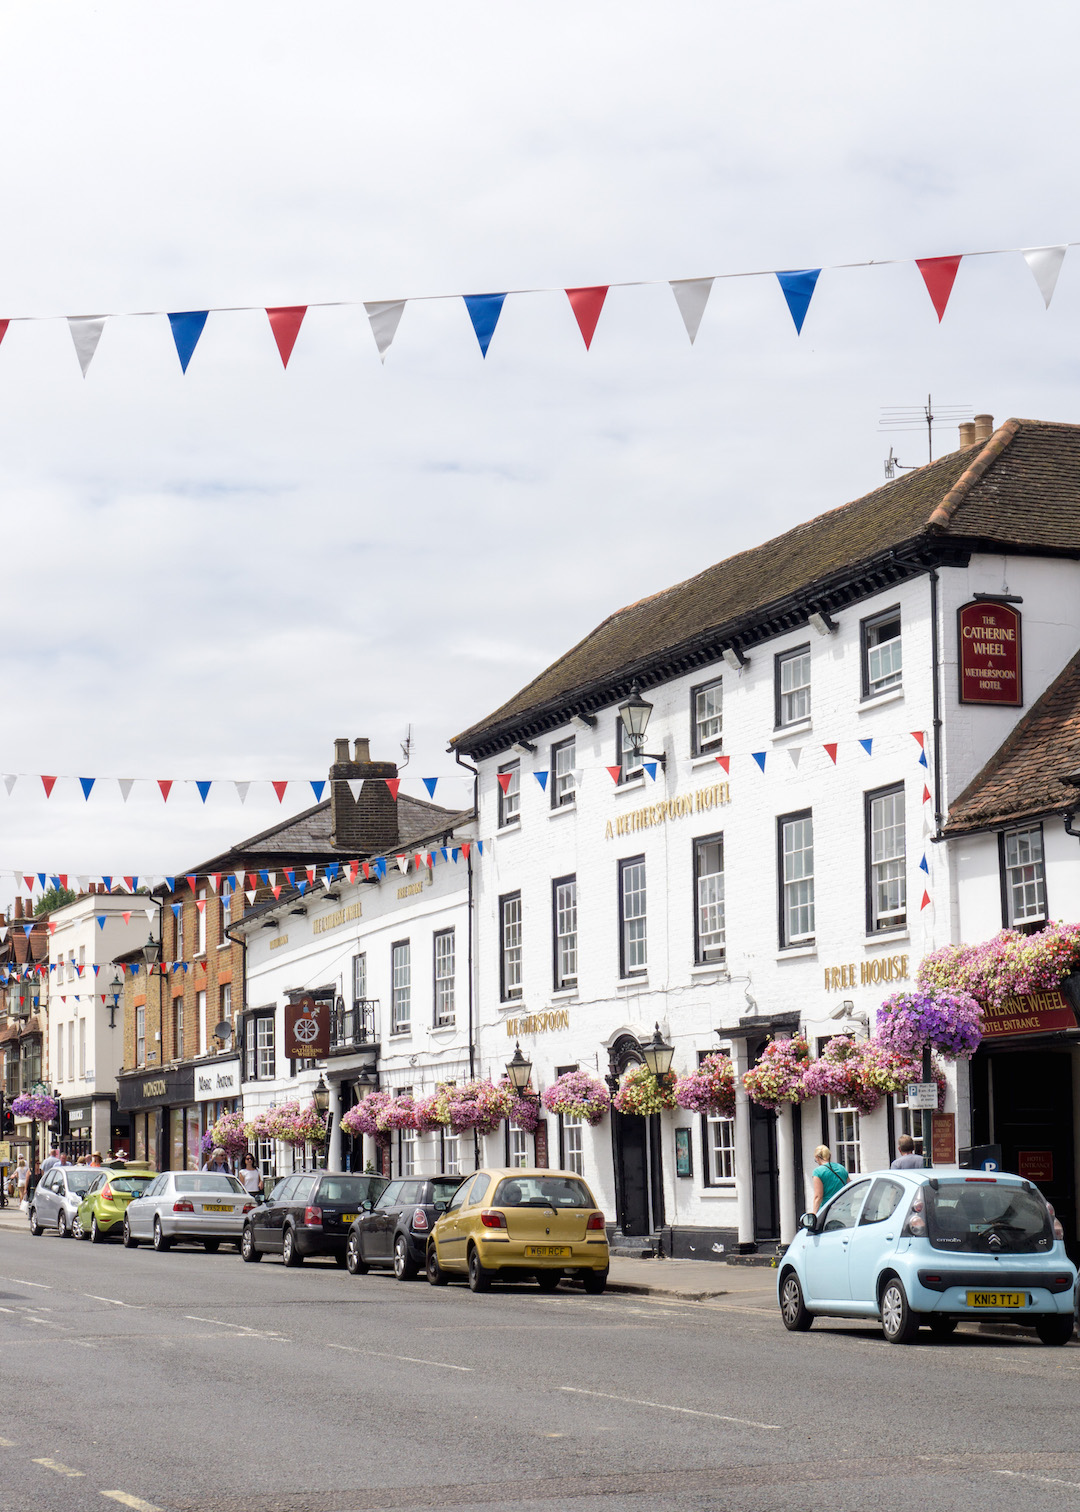 Streets of Henley decorated for Regatta